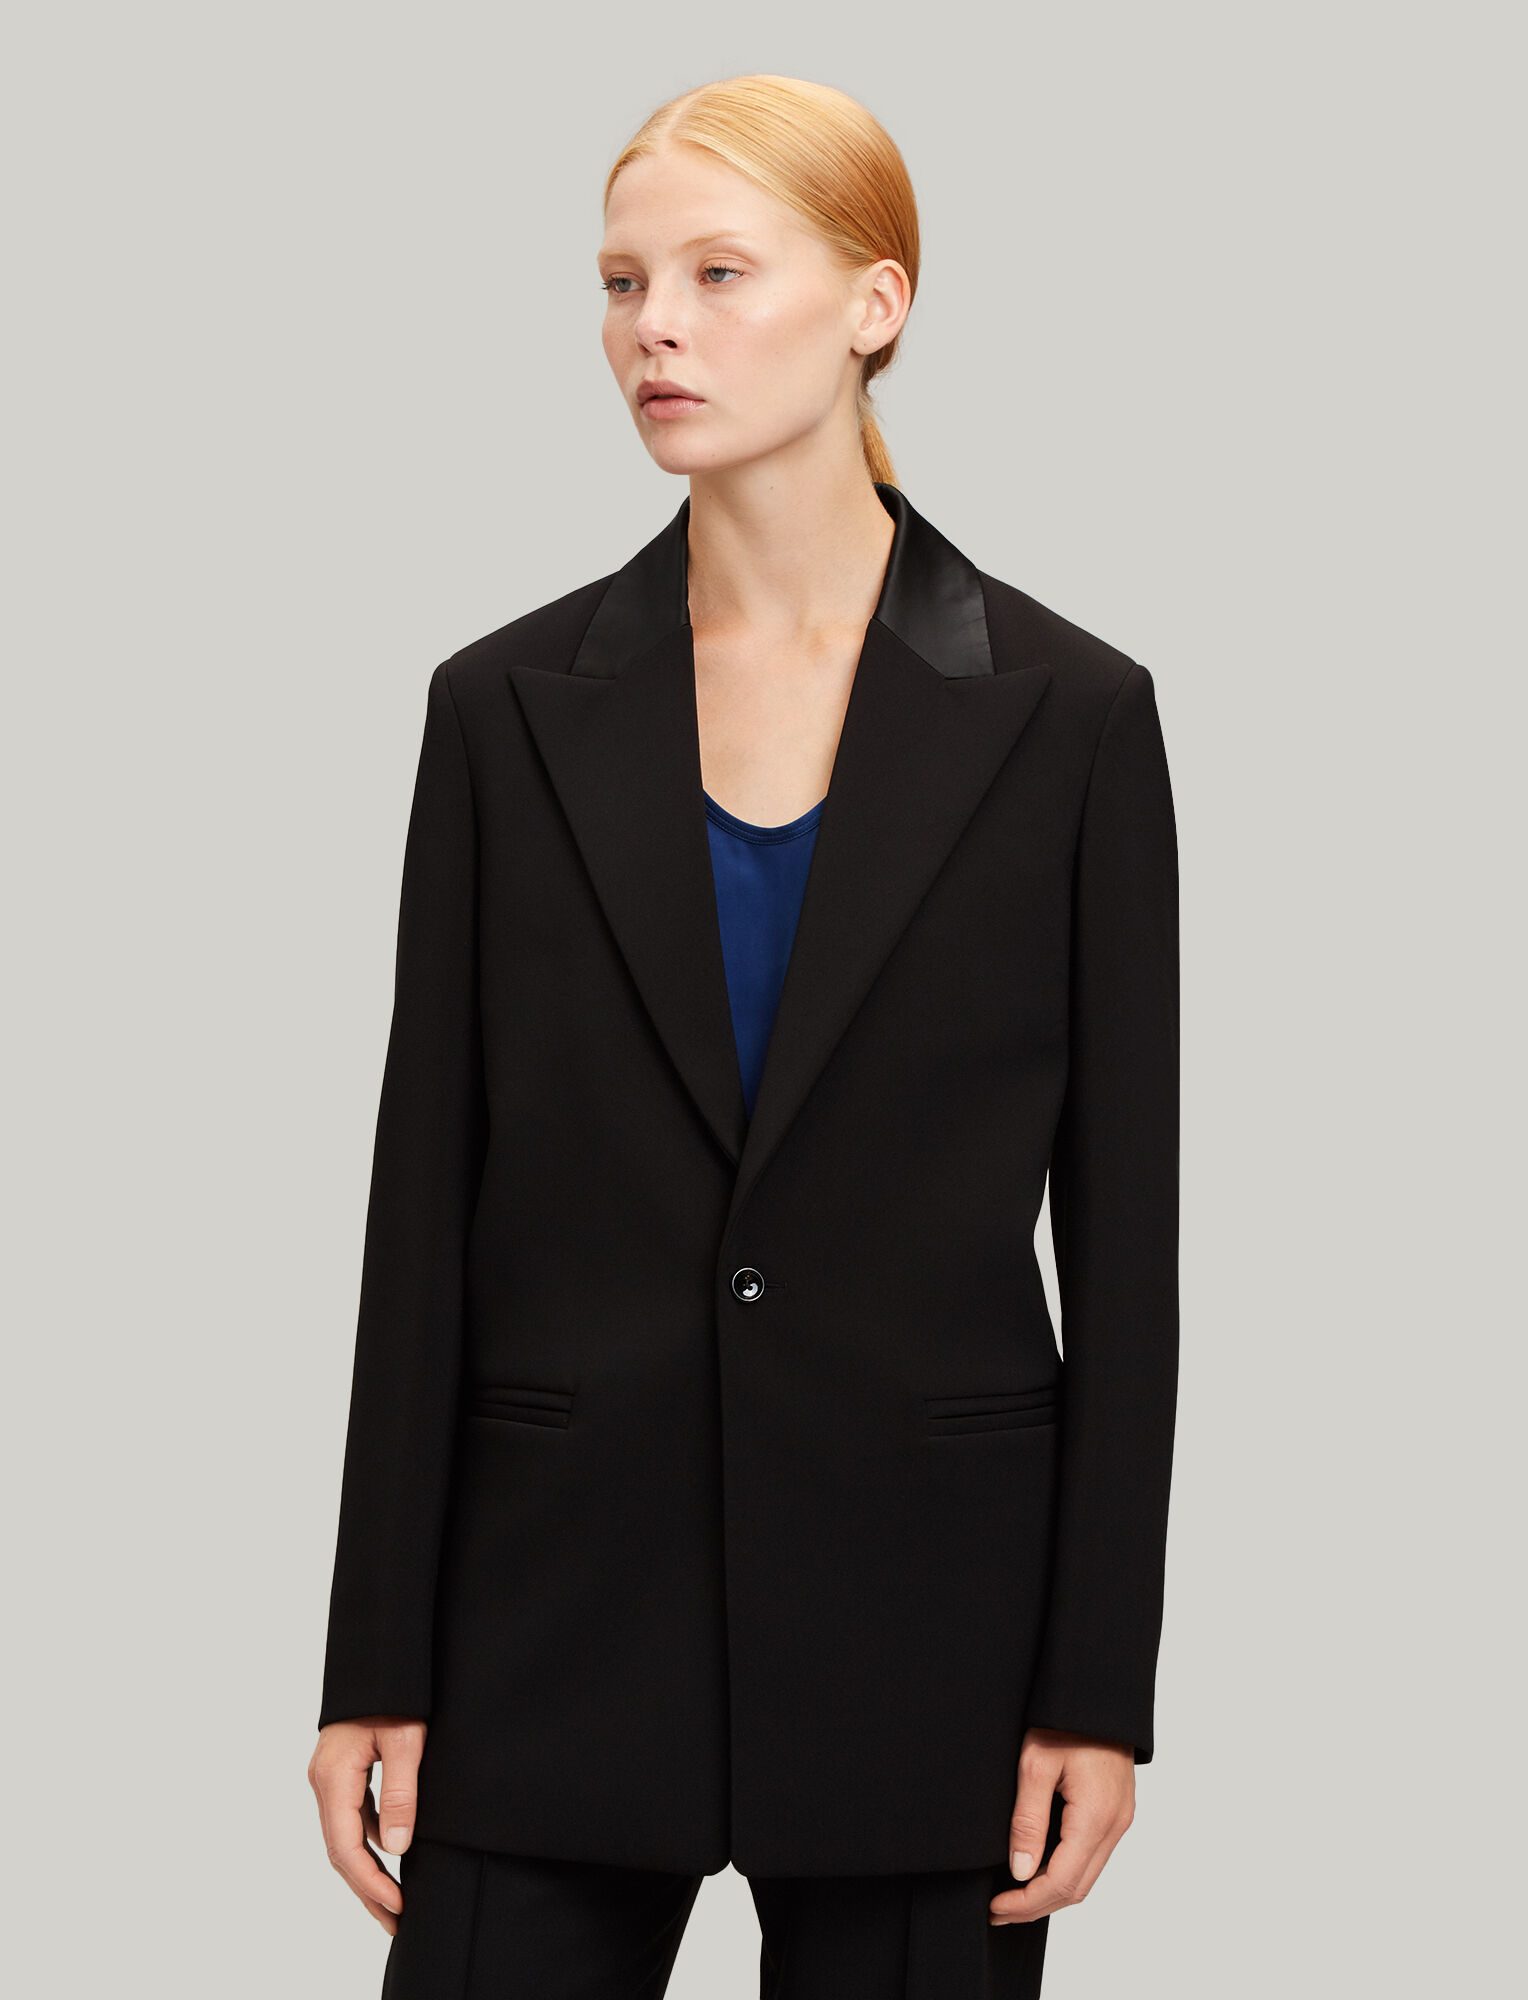 Joseph, Trenton Cady Stretch Jacket, in BLACK